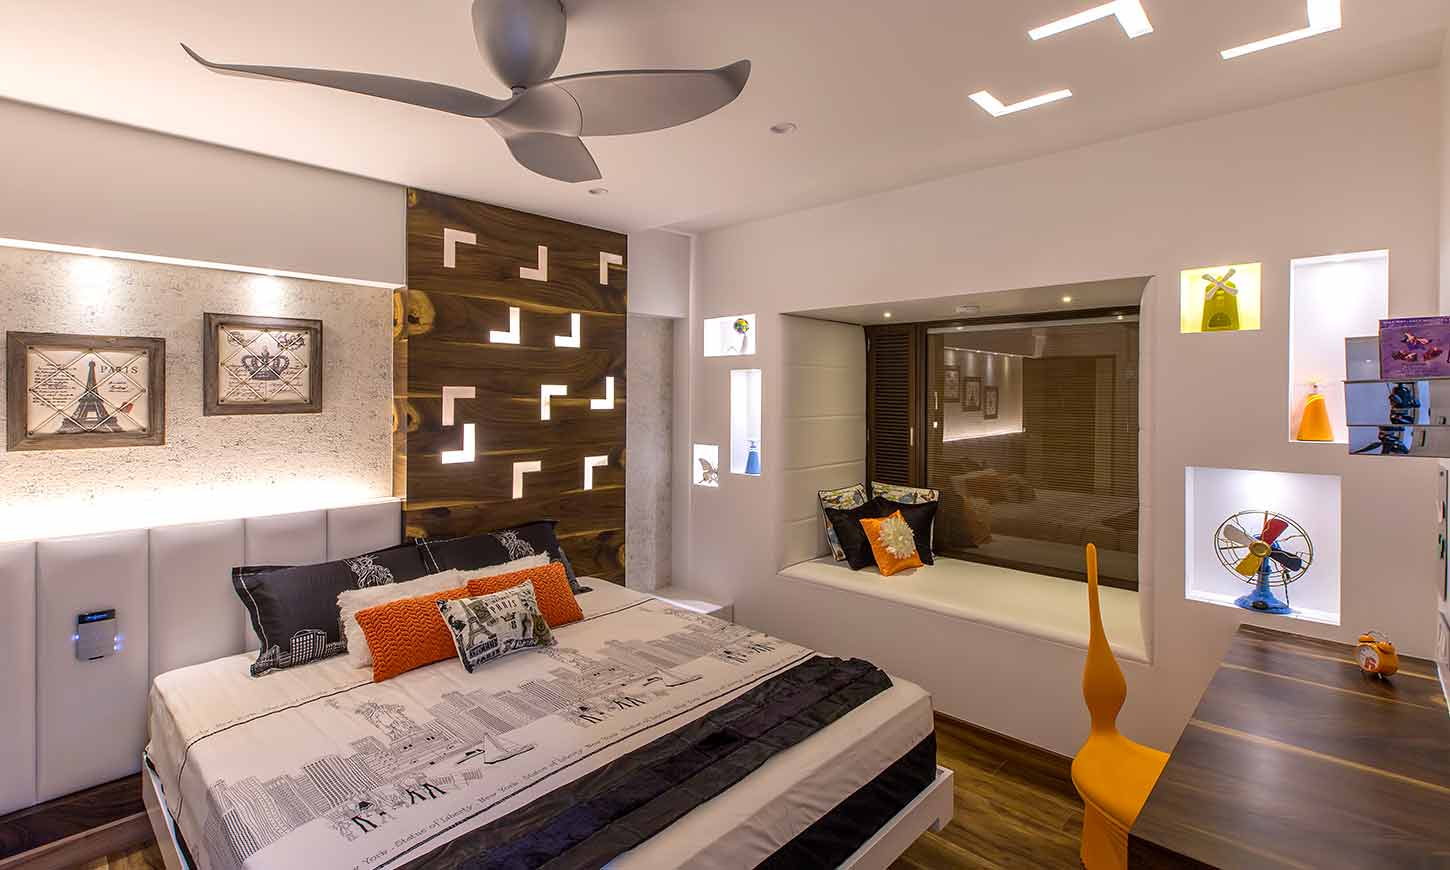 Bedroom designed by famous interior designers in bangalore where space looks like a personal gallery